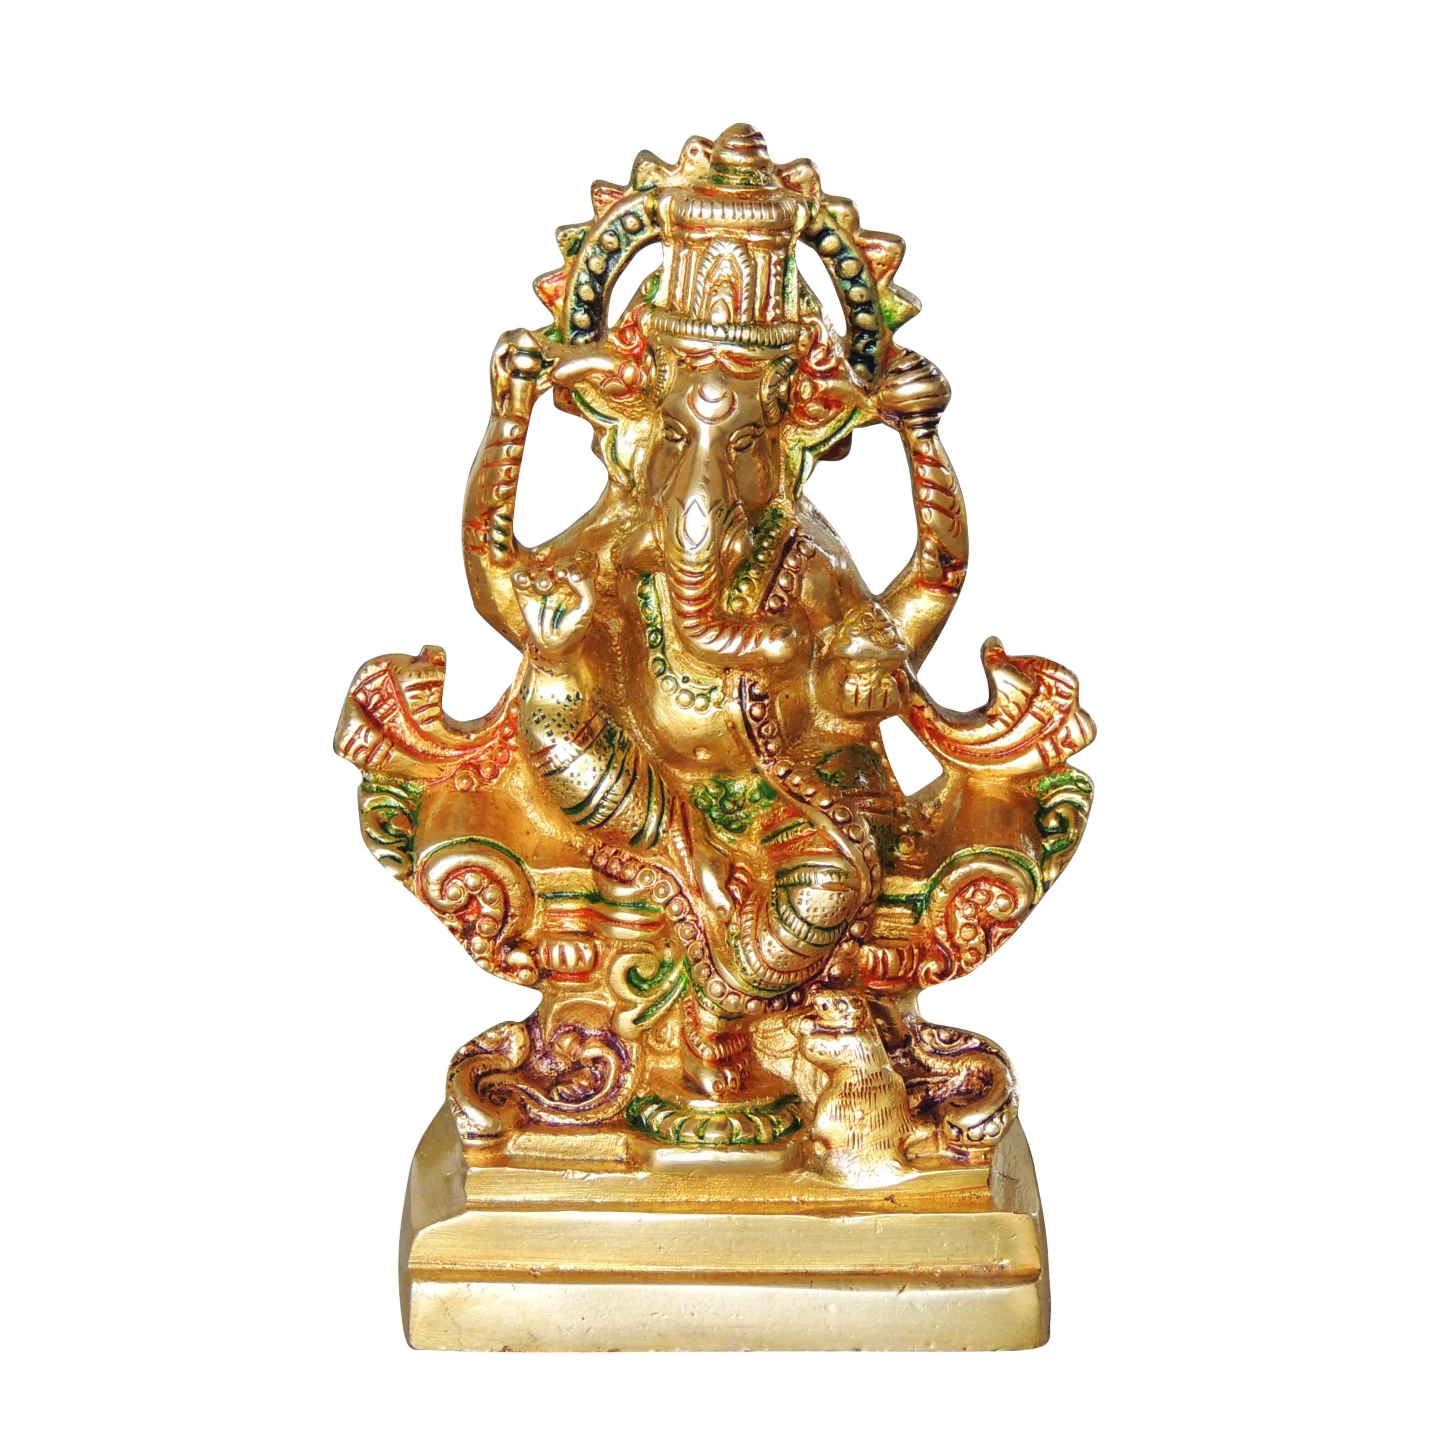 Brass Ganesh Statue Murti Idol in MultiColour Lacuquer Finish - 6.8 inch (BS1064 G)